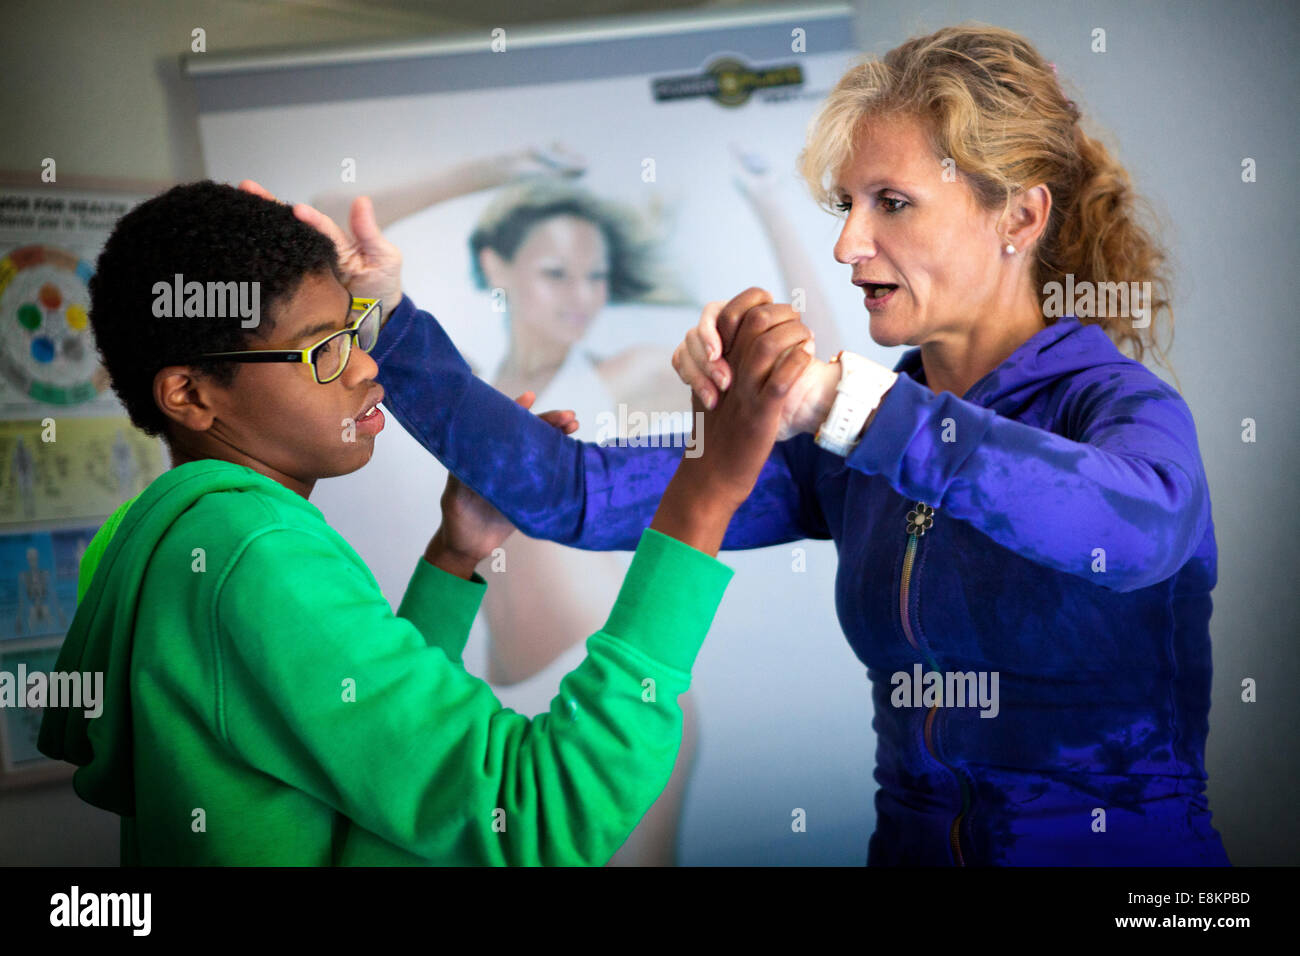 Reportage on Sylvain, 11 years old, suffering from autism He